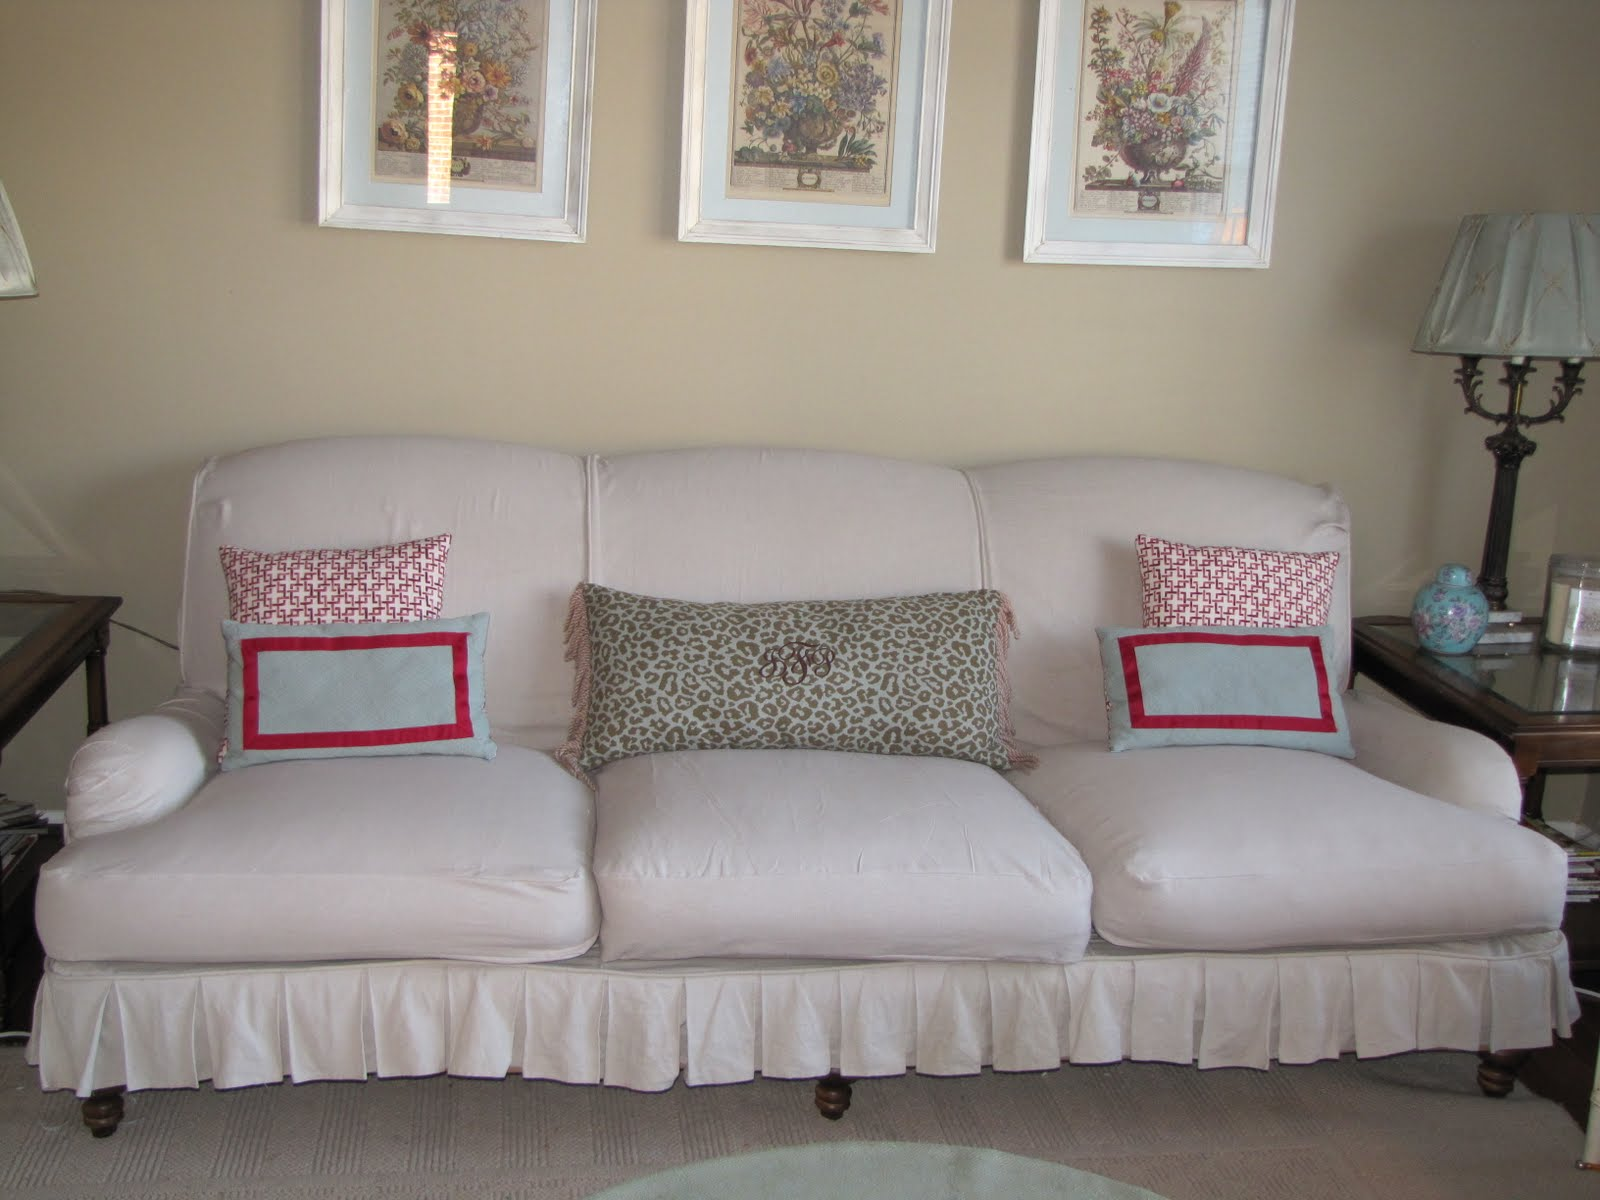 How To Make A Slipcover For Sofa Chair Alstons Padstow 3 Seater Bed Bibbidi Bobbidi Beautiful Sofas And Chairs